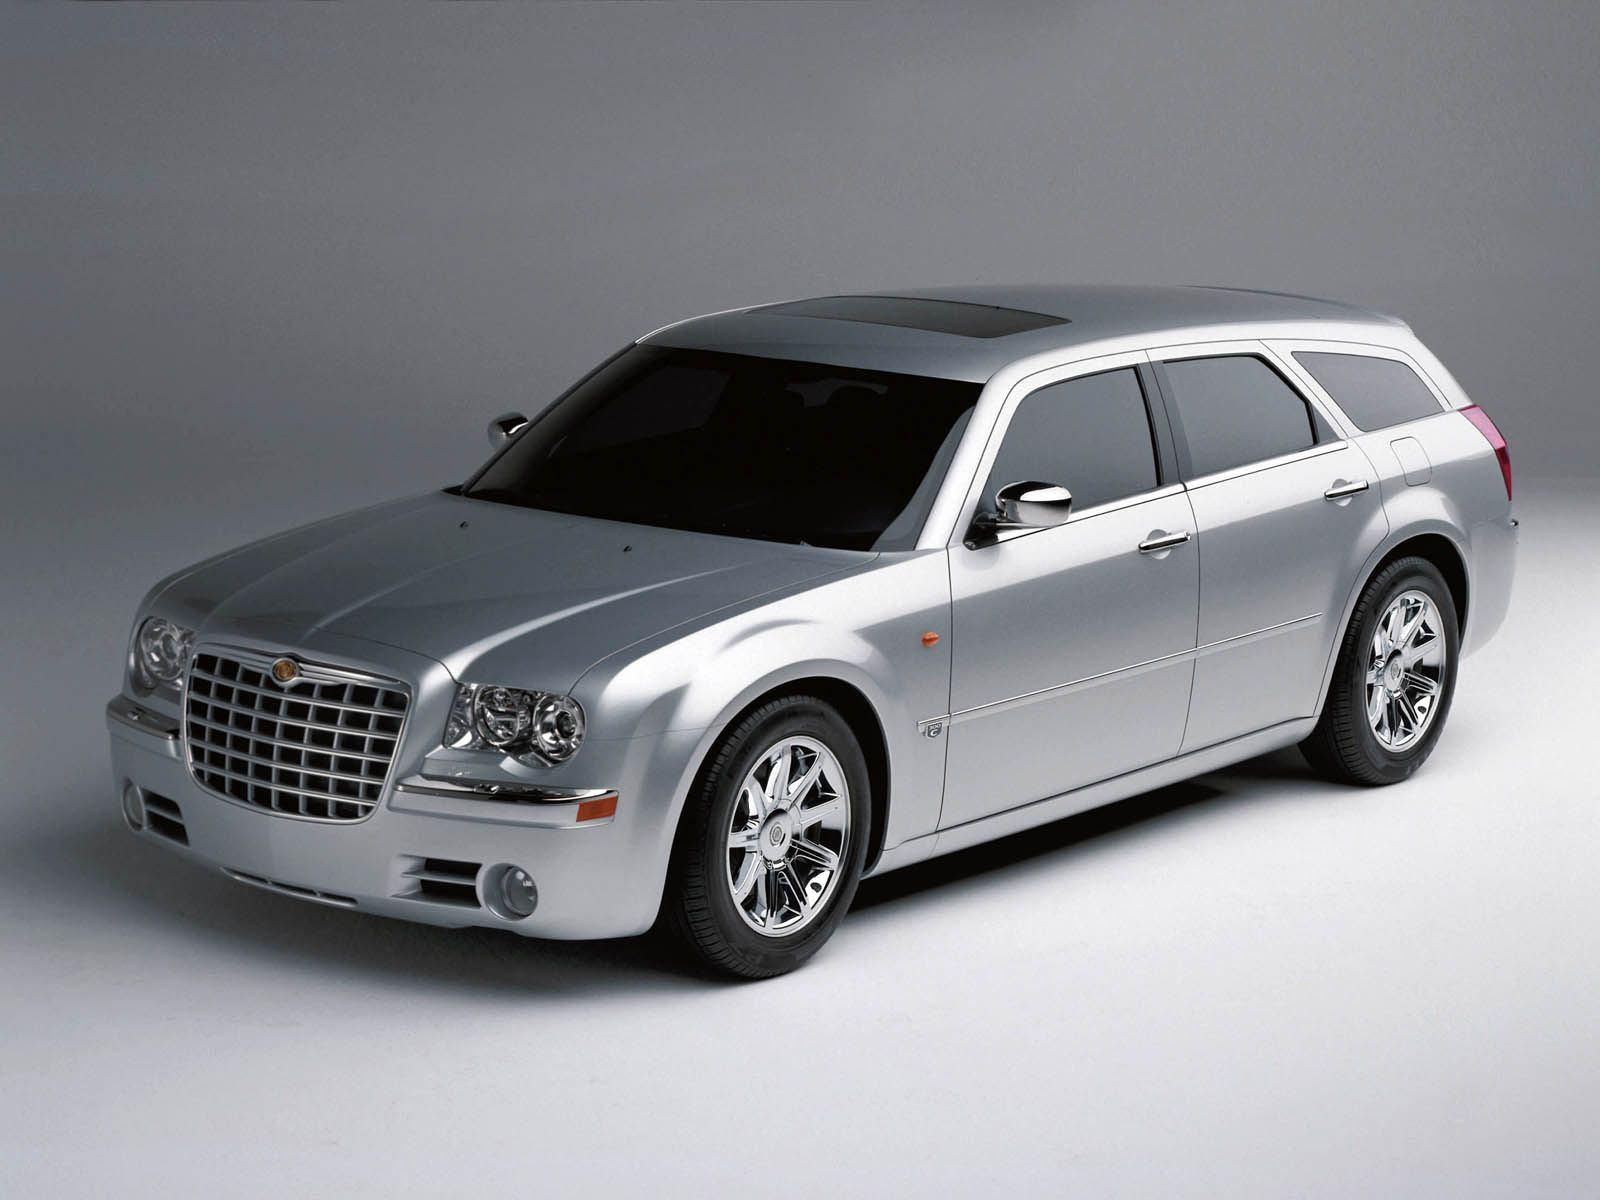 Chrysler 300 touring station wagon car picture car hd wallpaper